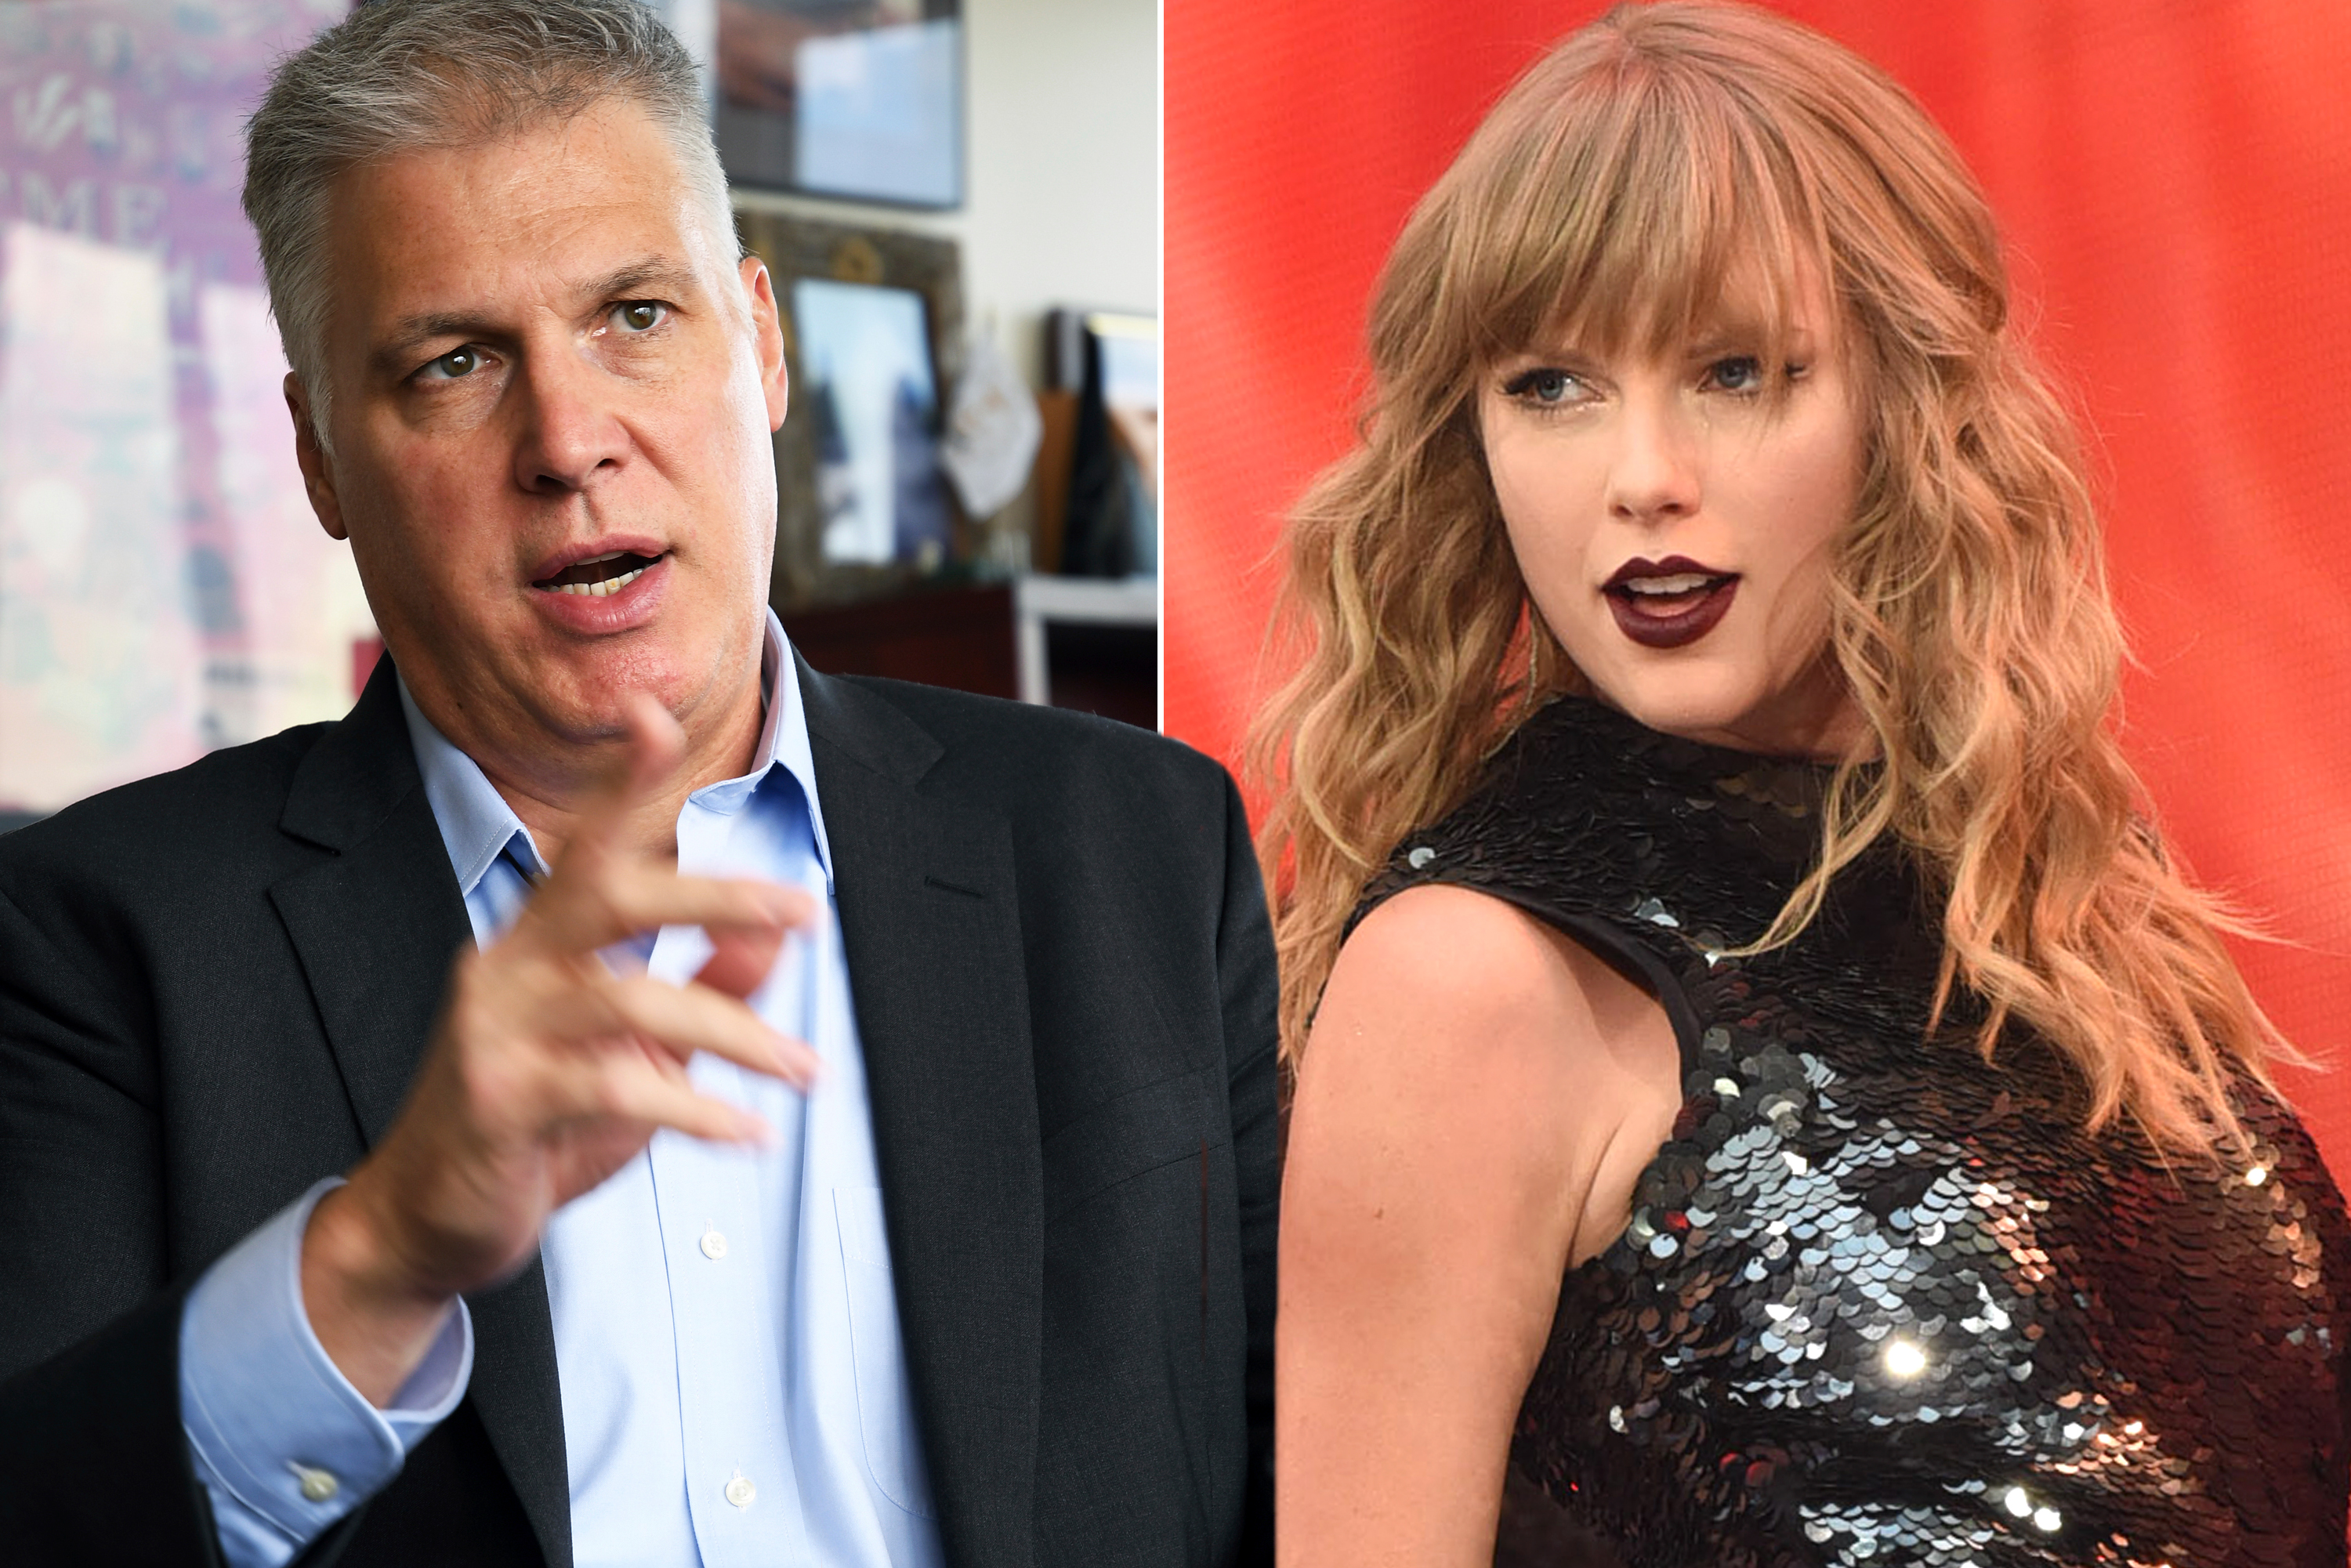 Dj Who Groped Taylor Swift Is Afraid To Talk To Women